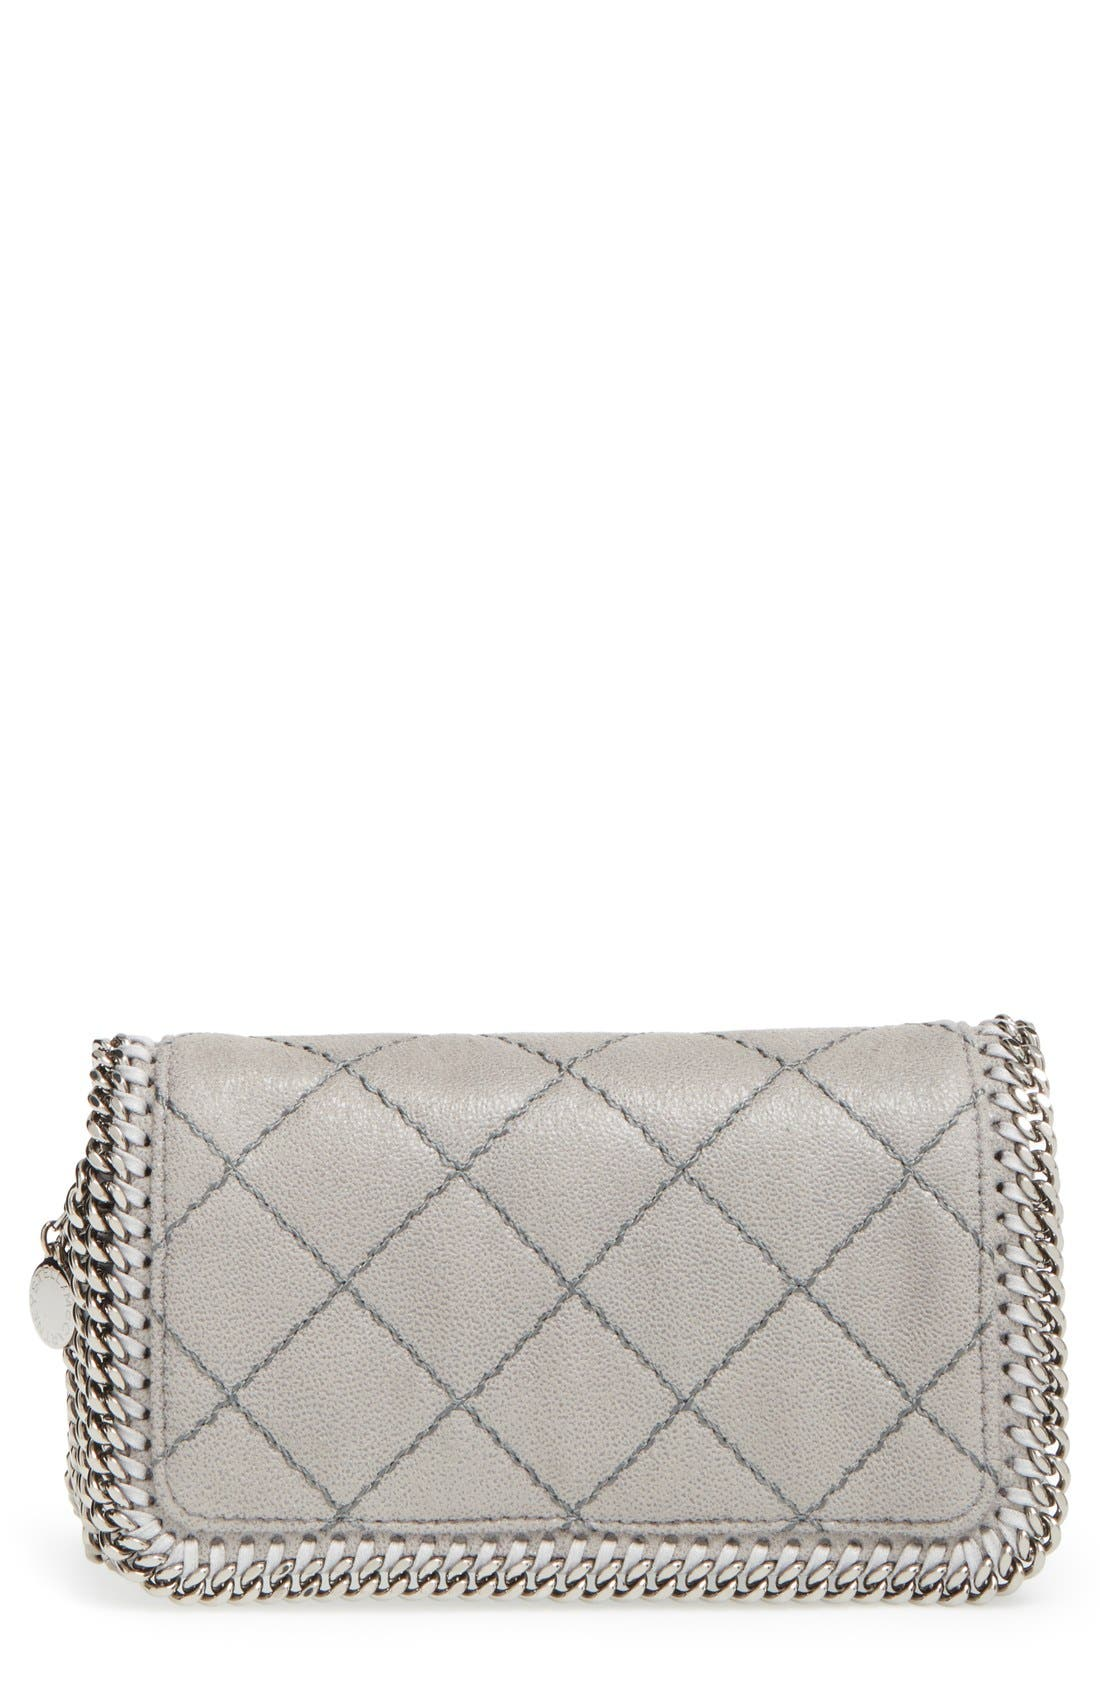 'Falabella' Quilted Faux Leather Crossbody Bag,                         Main,                         color, 021